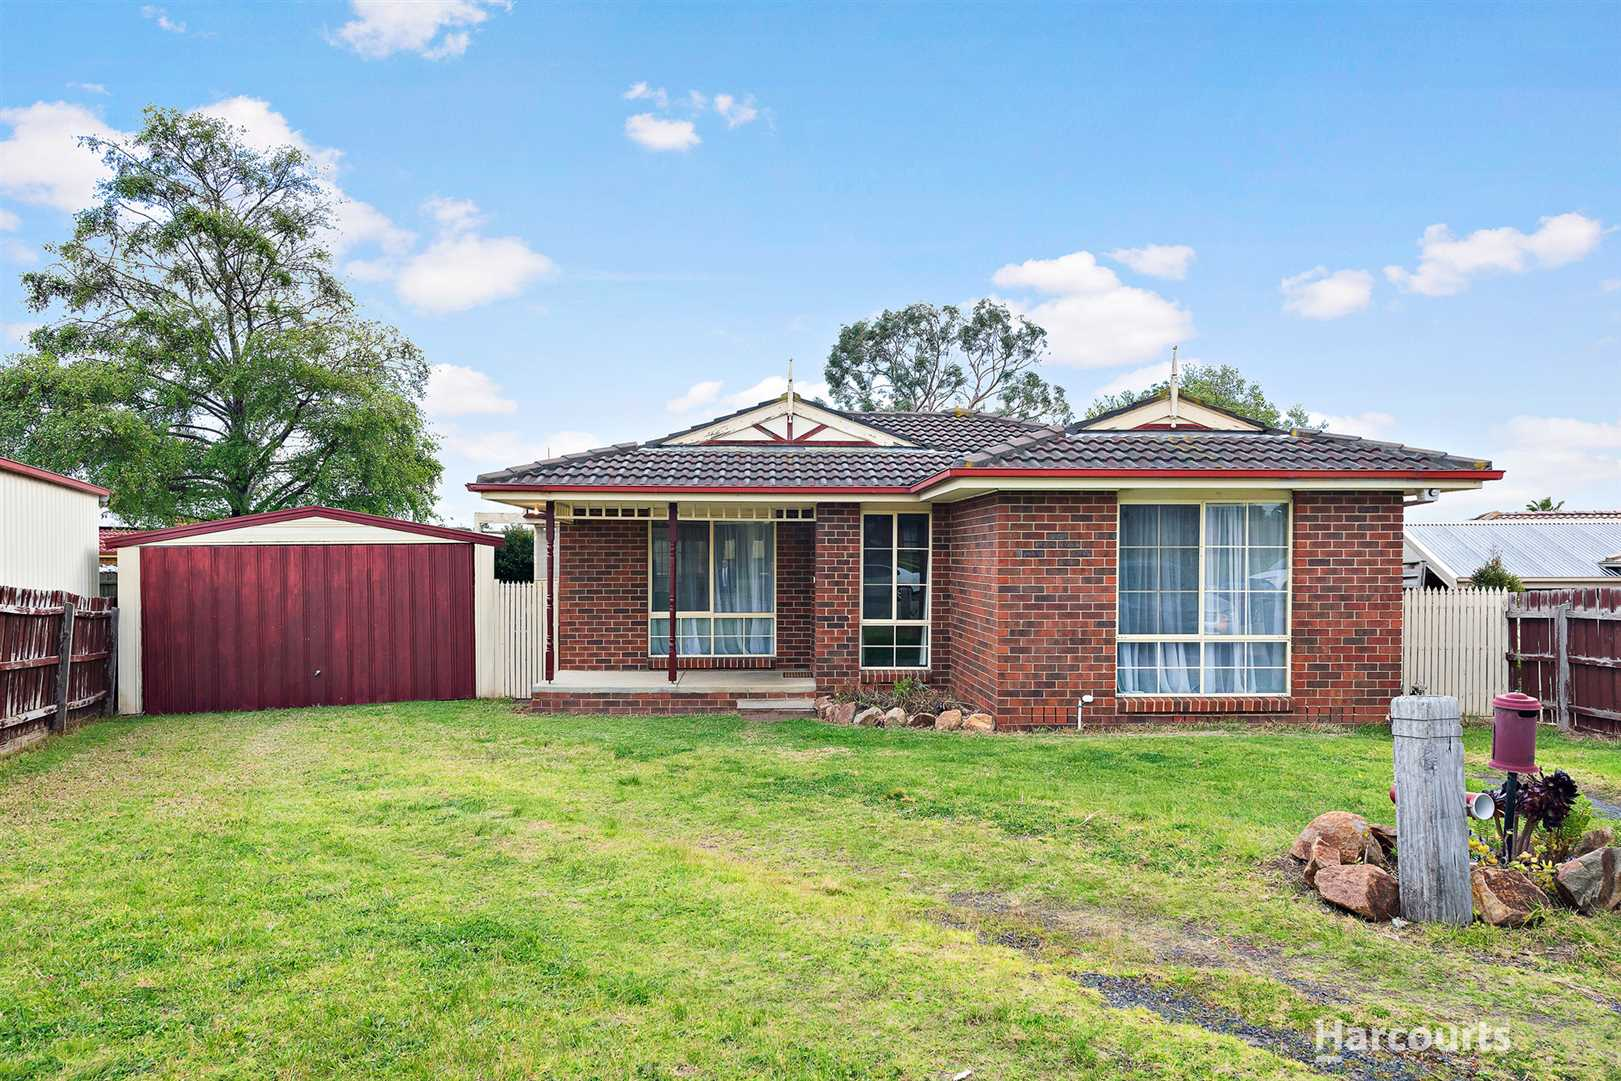 A big, beautiful 4 bedroom home on 670m2*